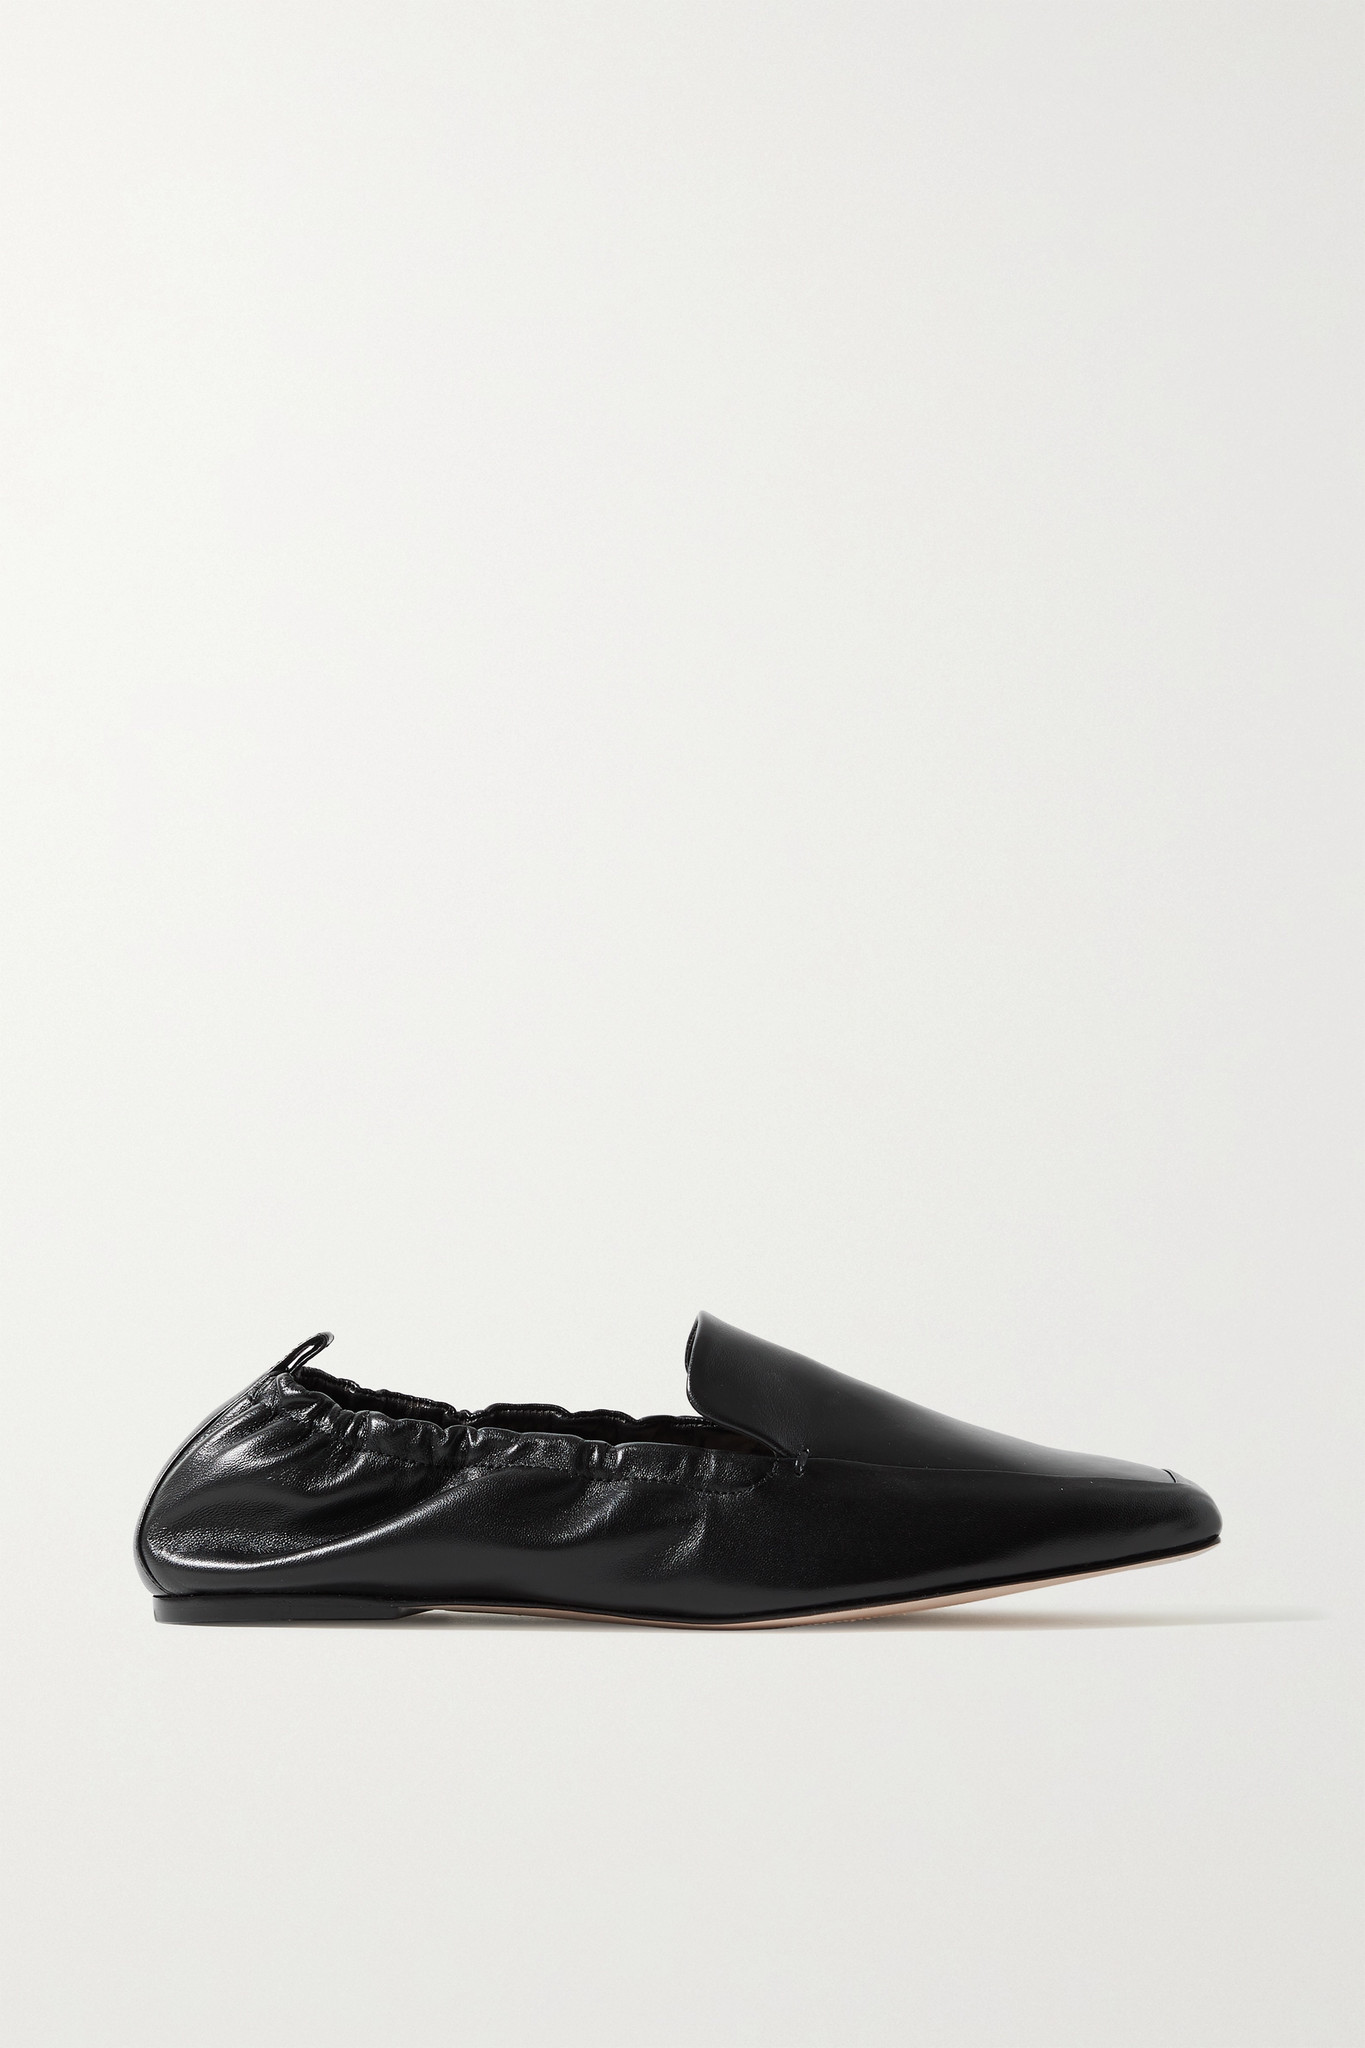 PORTE & PAIRE - Leather Loafers - Black - IT39